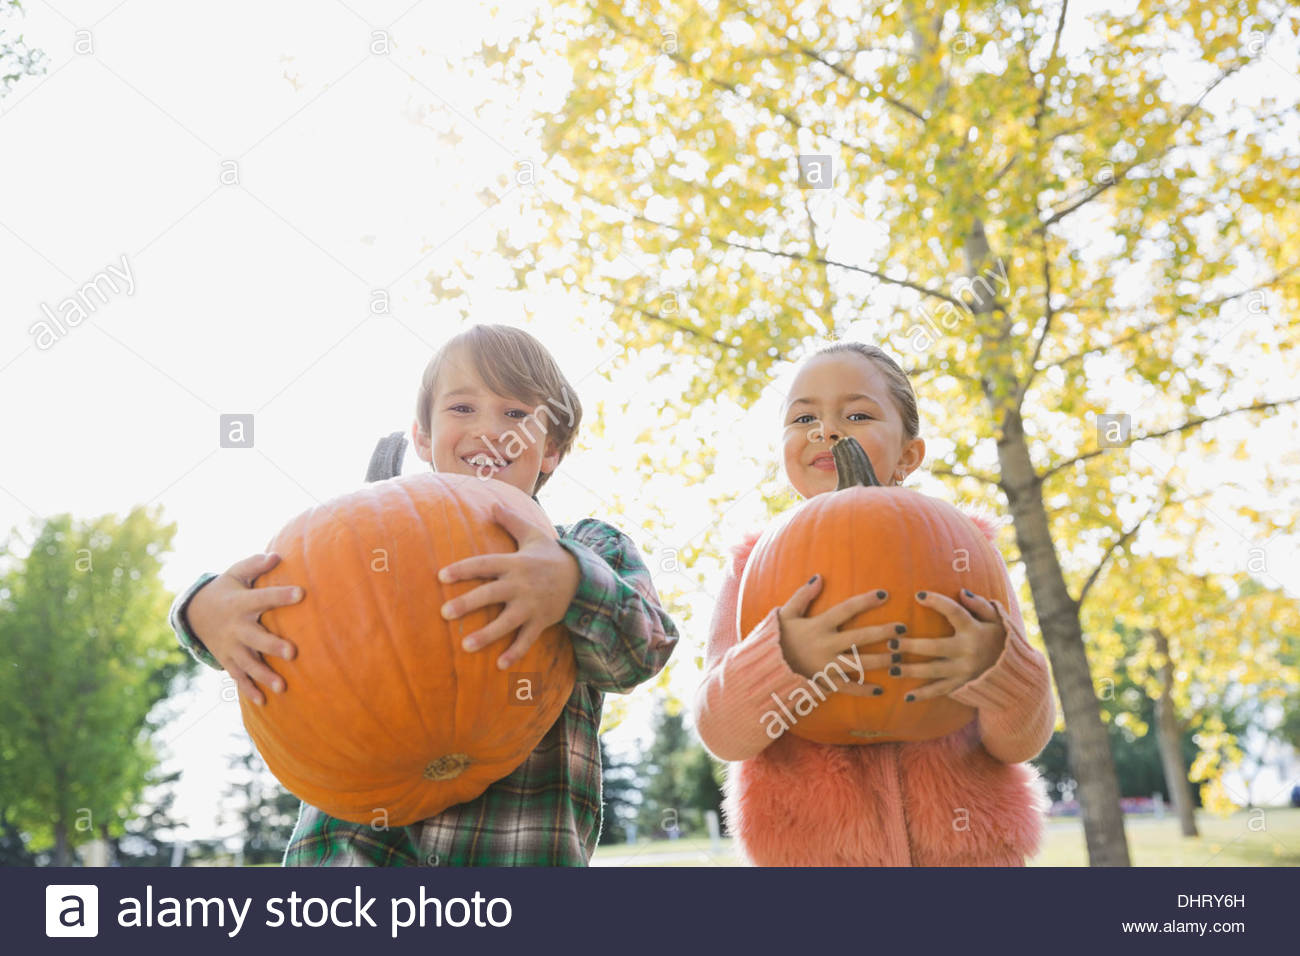 Portrait of kids carrying pumpkins - Stock Image